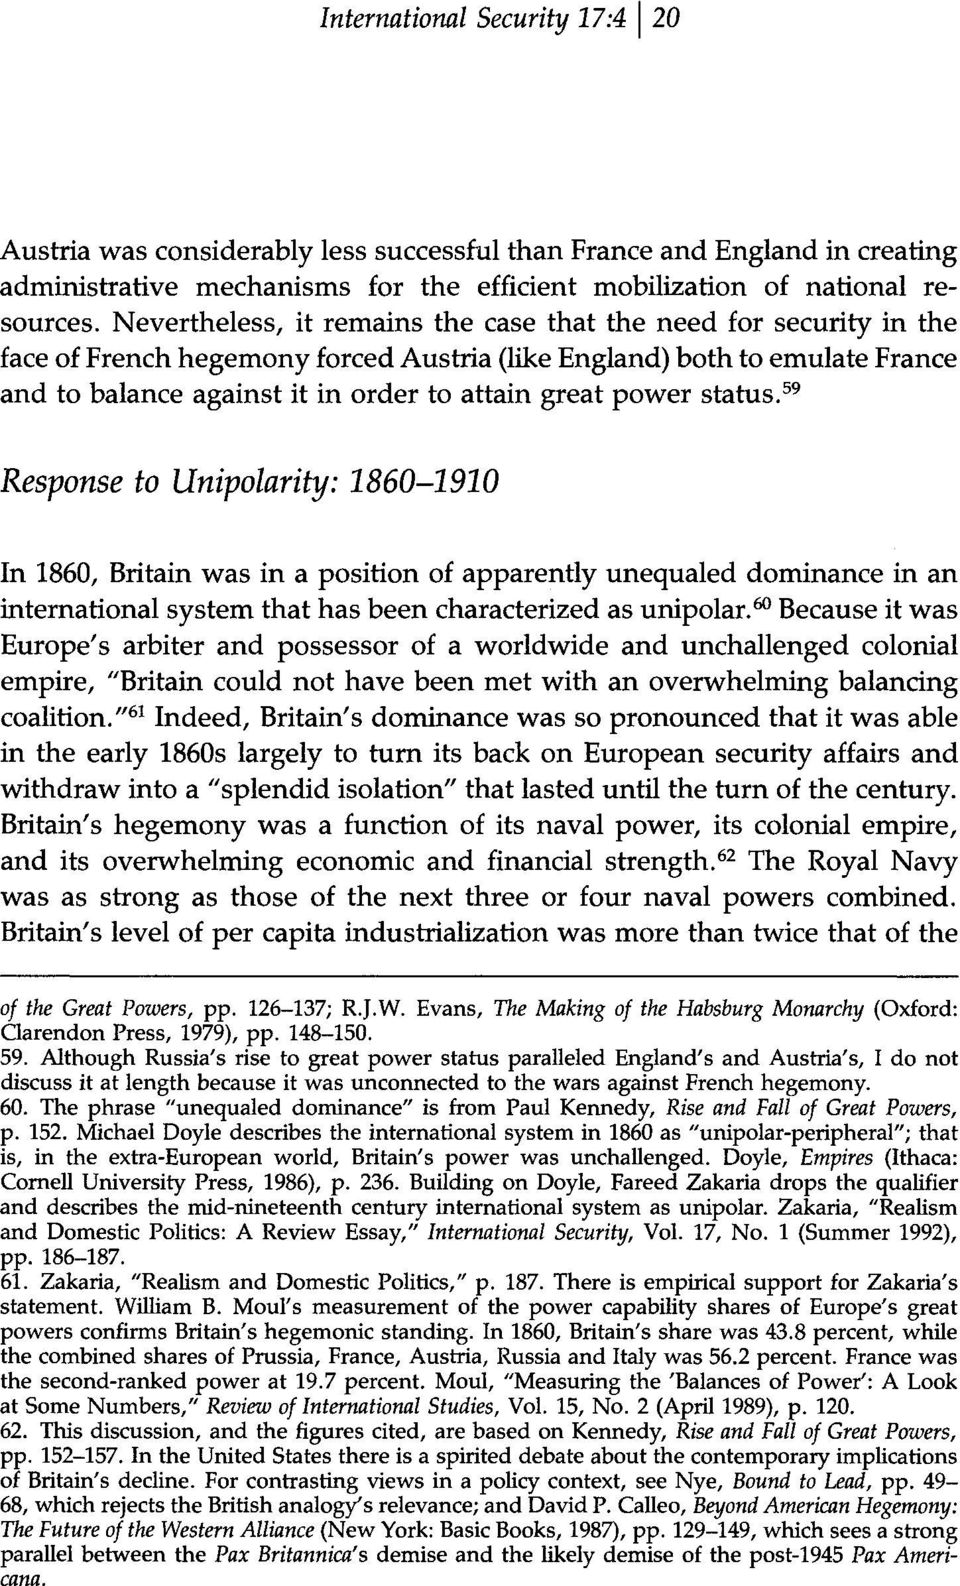 power status.59 Response to Unipolarity: 1860-1910 In 1860, Britain was in a position of apparently unequaled dominance in an international system that has been characterized as unipolar.